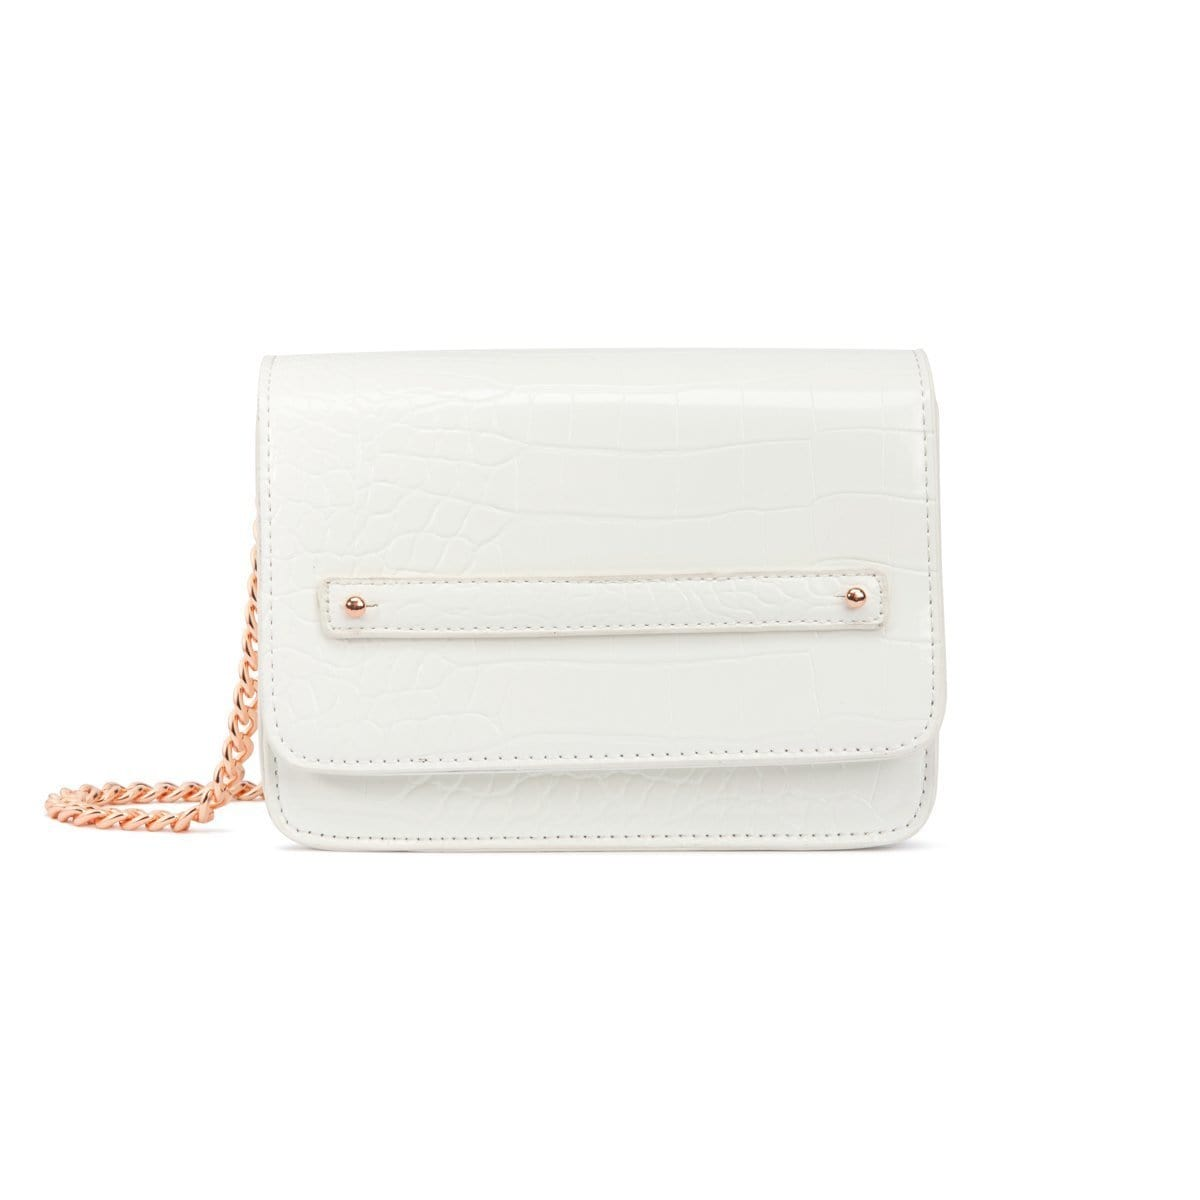 Snow White Personalise Handbag Rose Gold